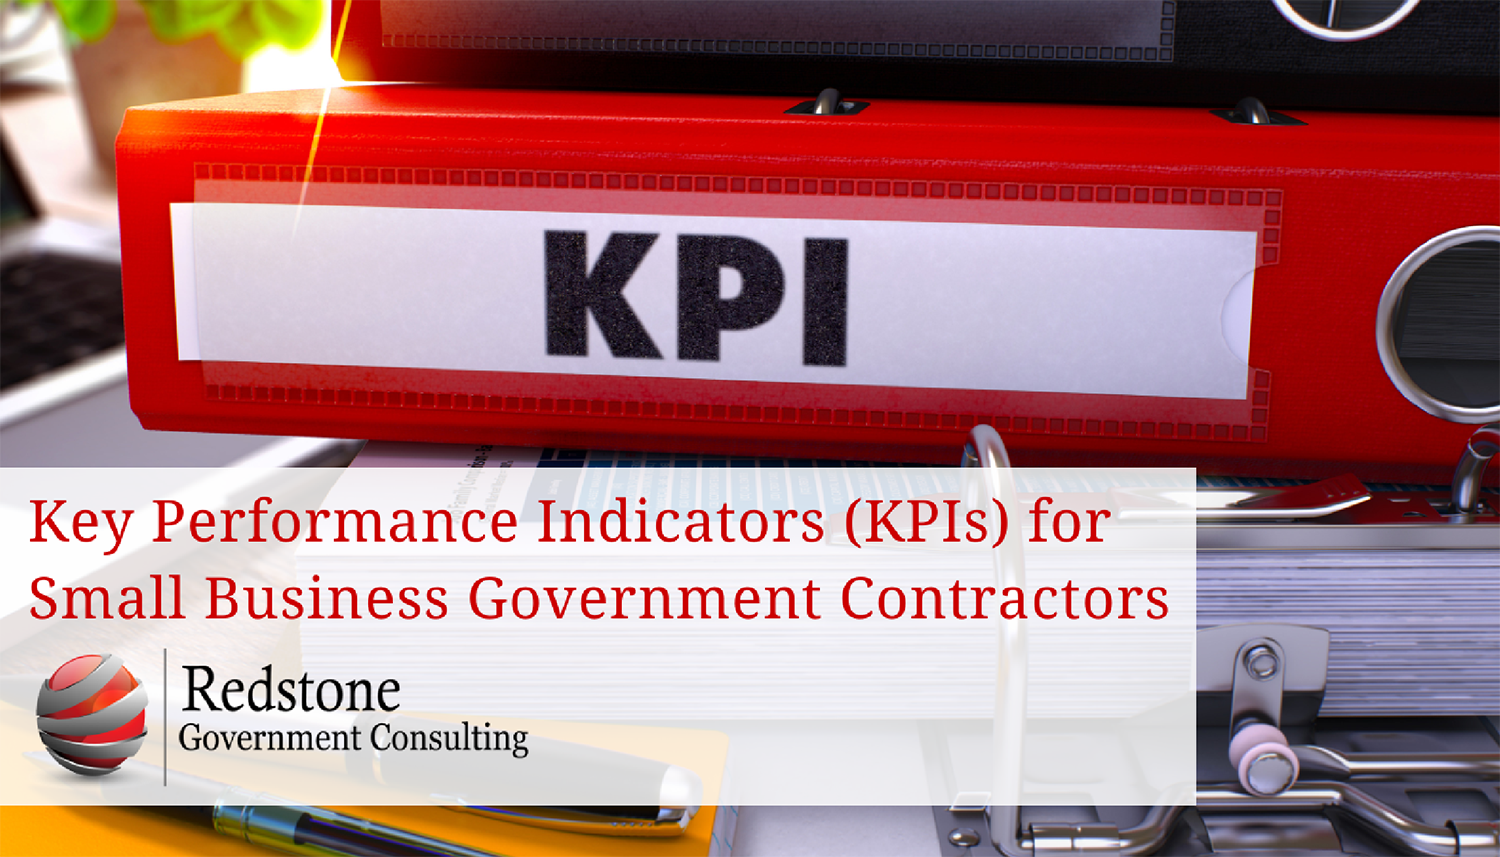 Redstone-Key Performance Indicators (KPIs) for Small Business Government Contractors.png